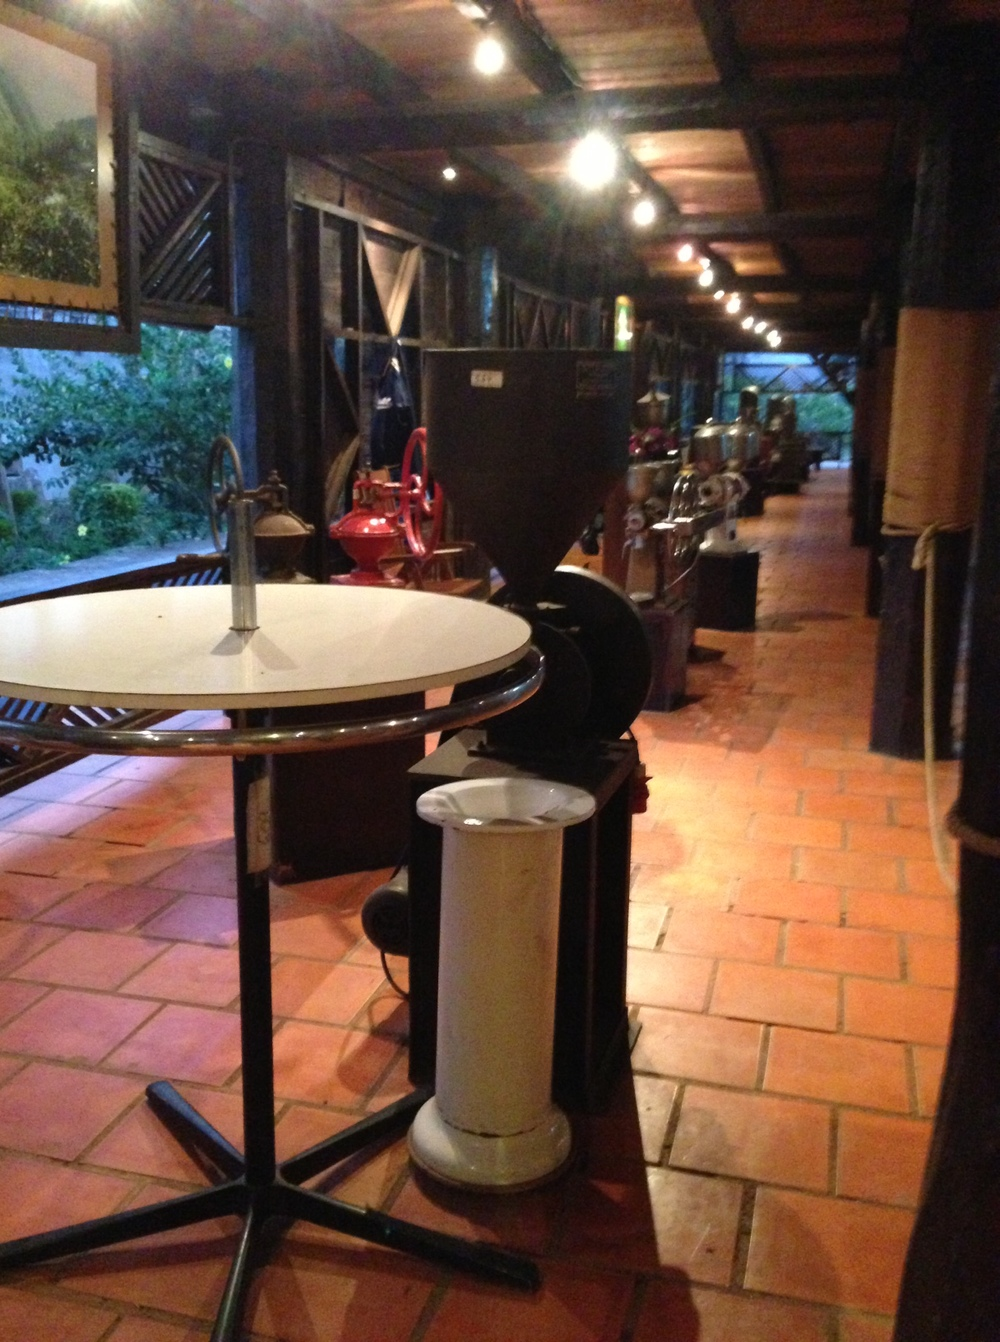 Cupping table with spittoon (foreground), grinders, and old espresso machines (background).